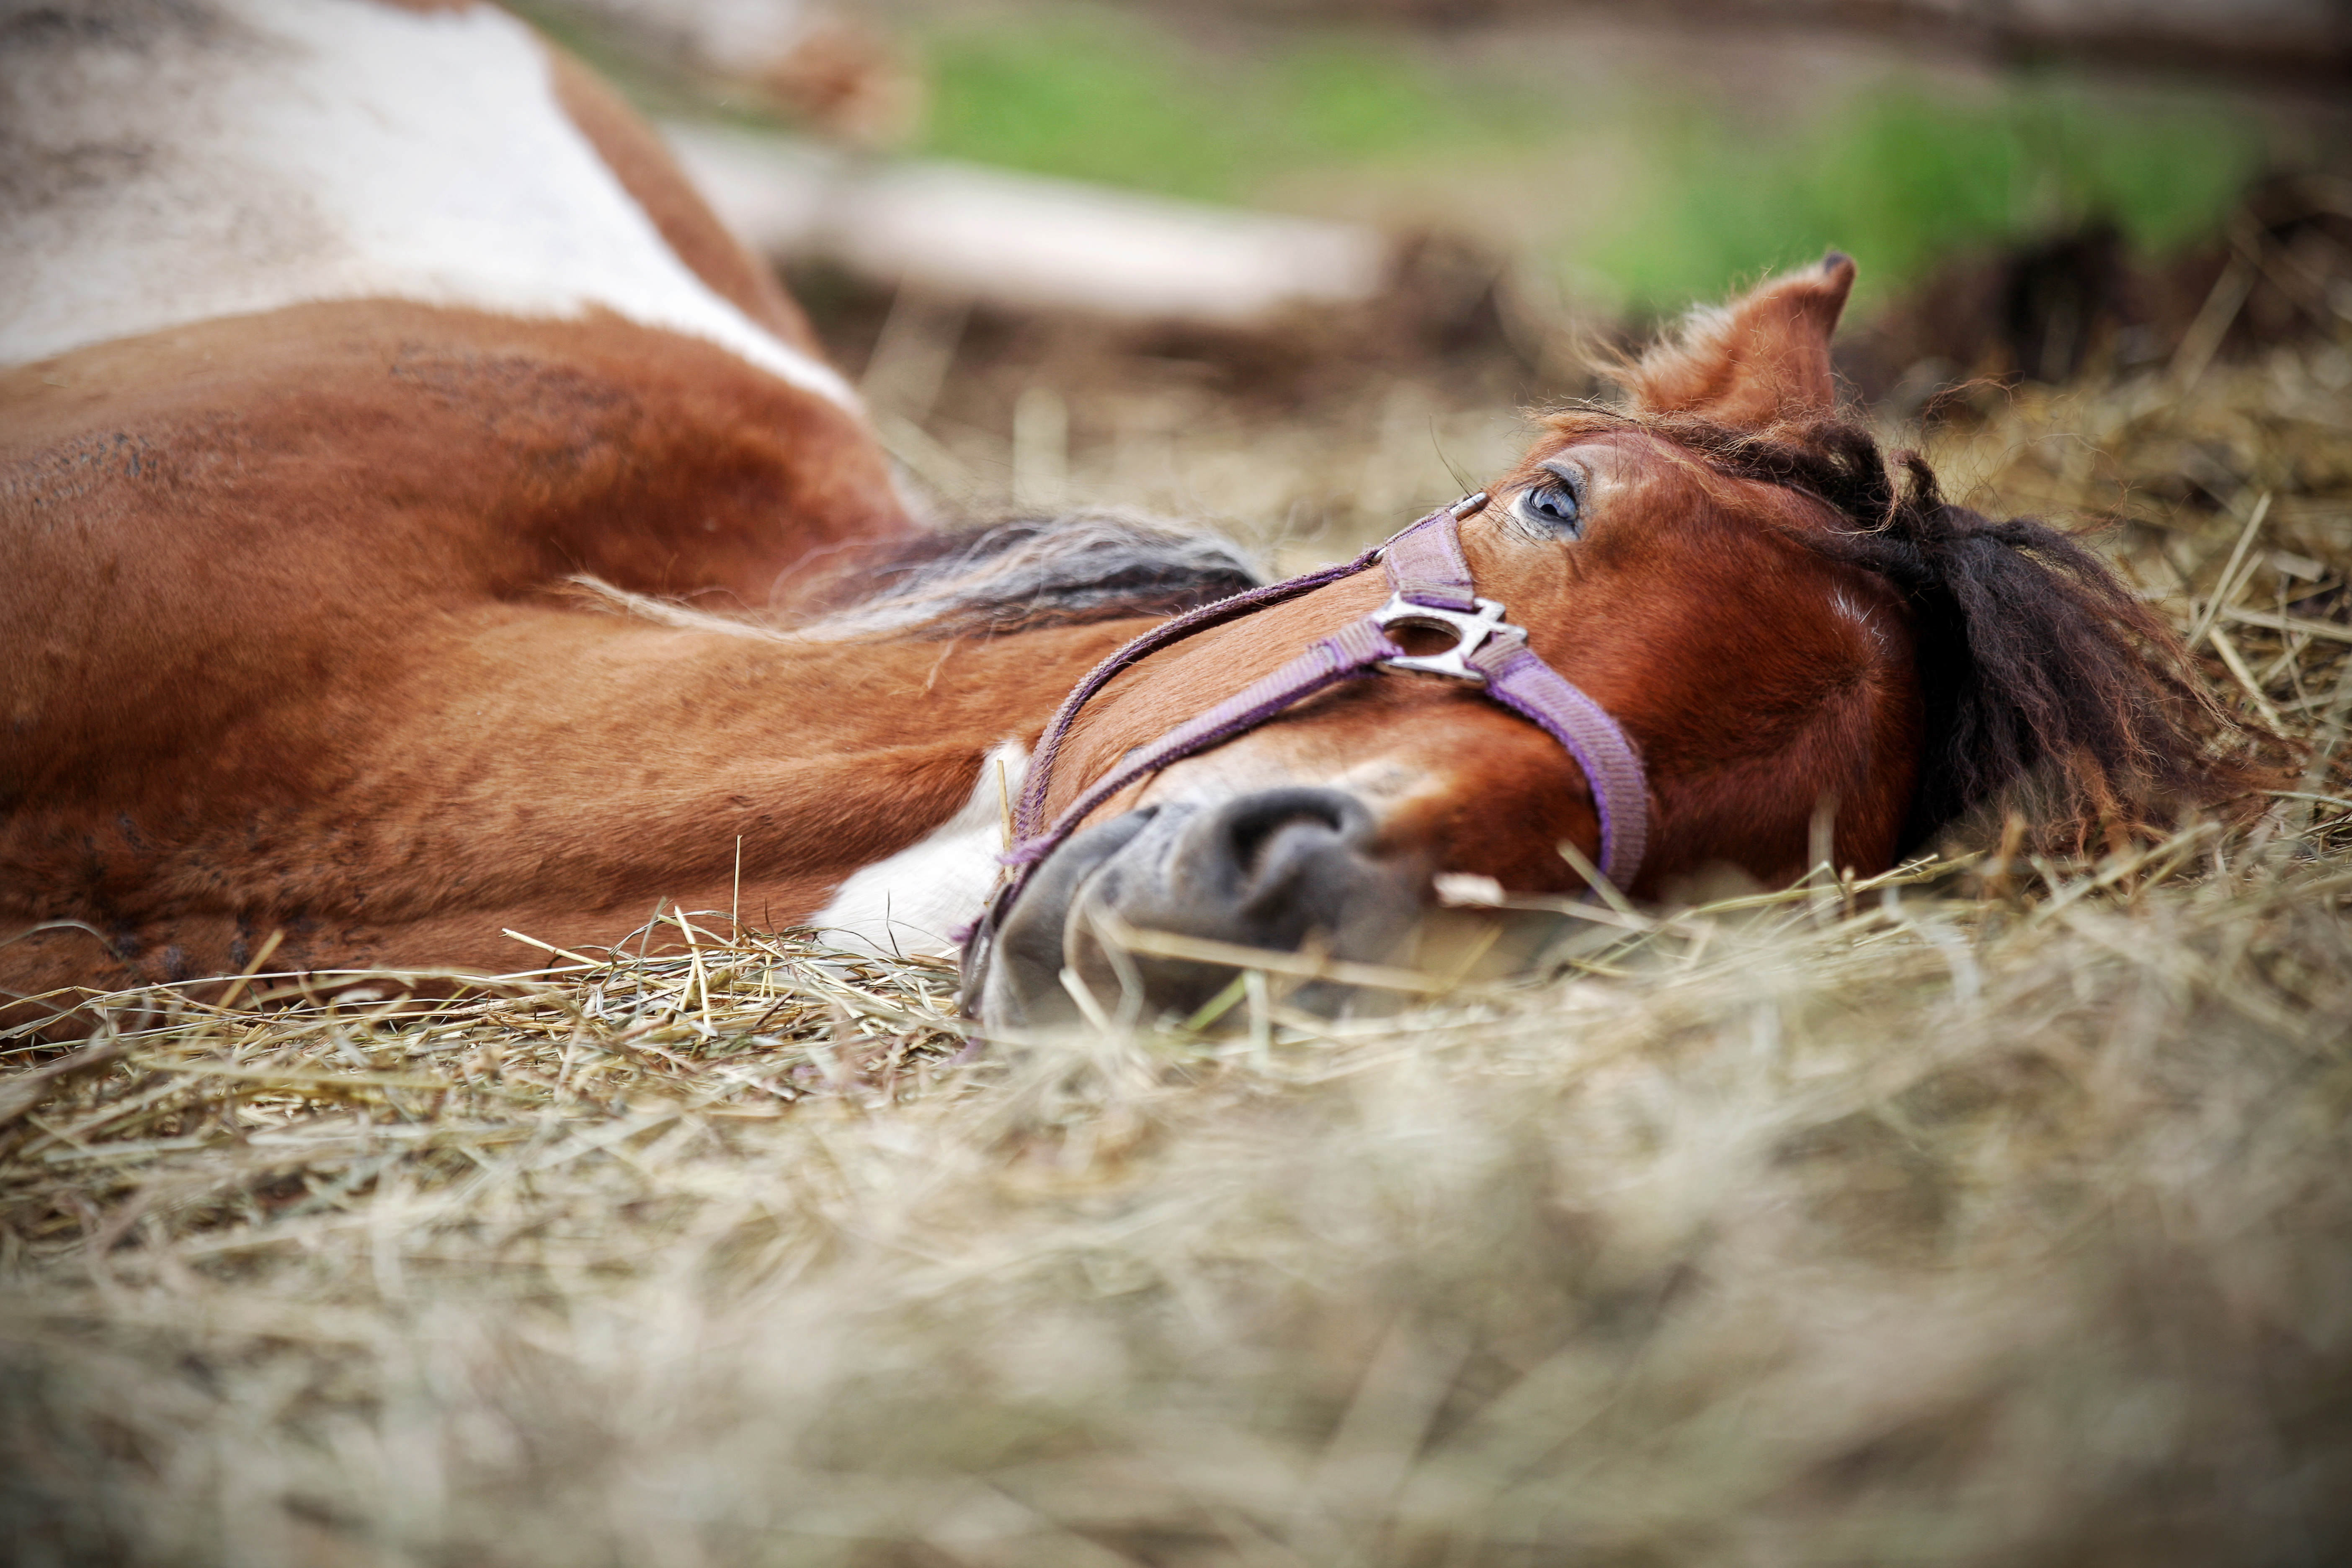 Brown mare laying down in hay pile